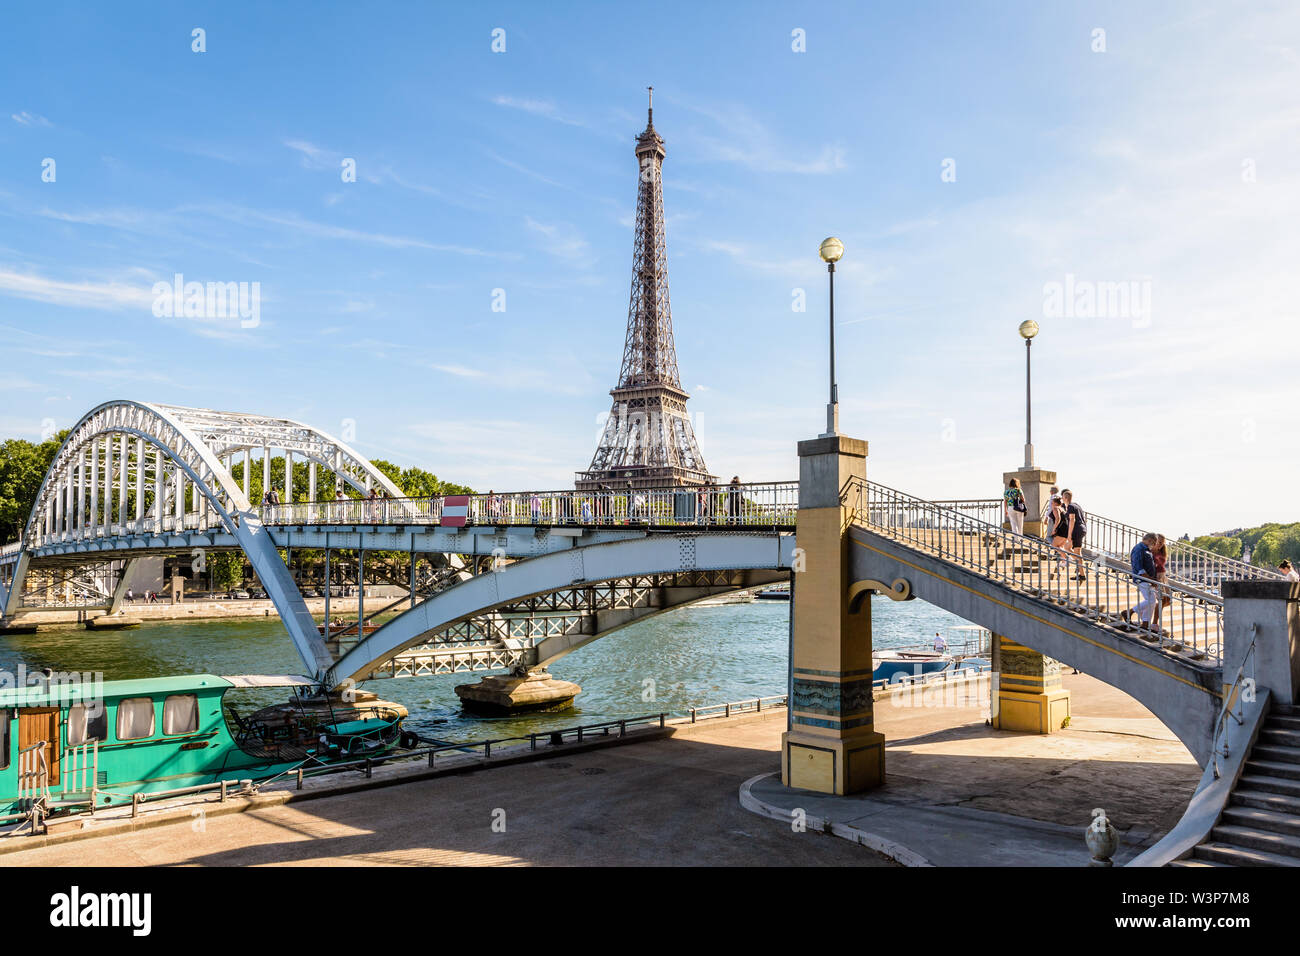 The Debilly footbridge is a pedestrian through arch bridge over the river Seine, built in 1900 not far from the Eiffel tower in Paris, France. - Stock Image